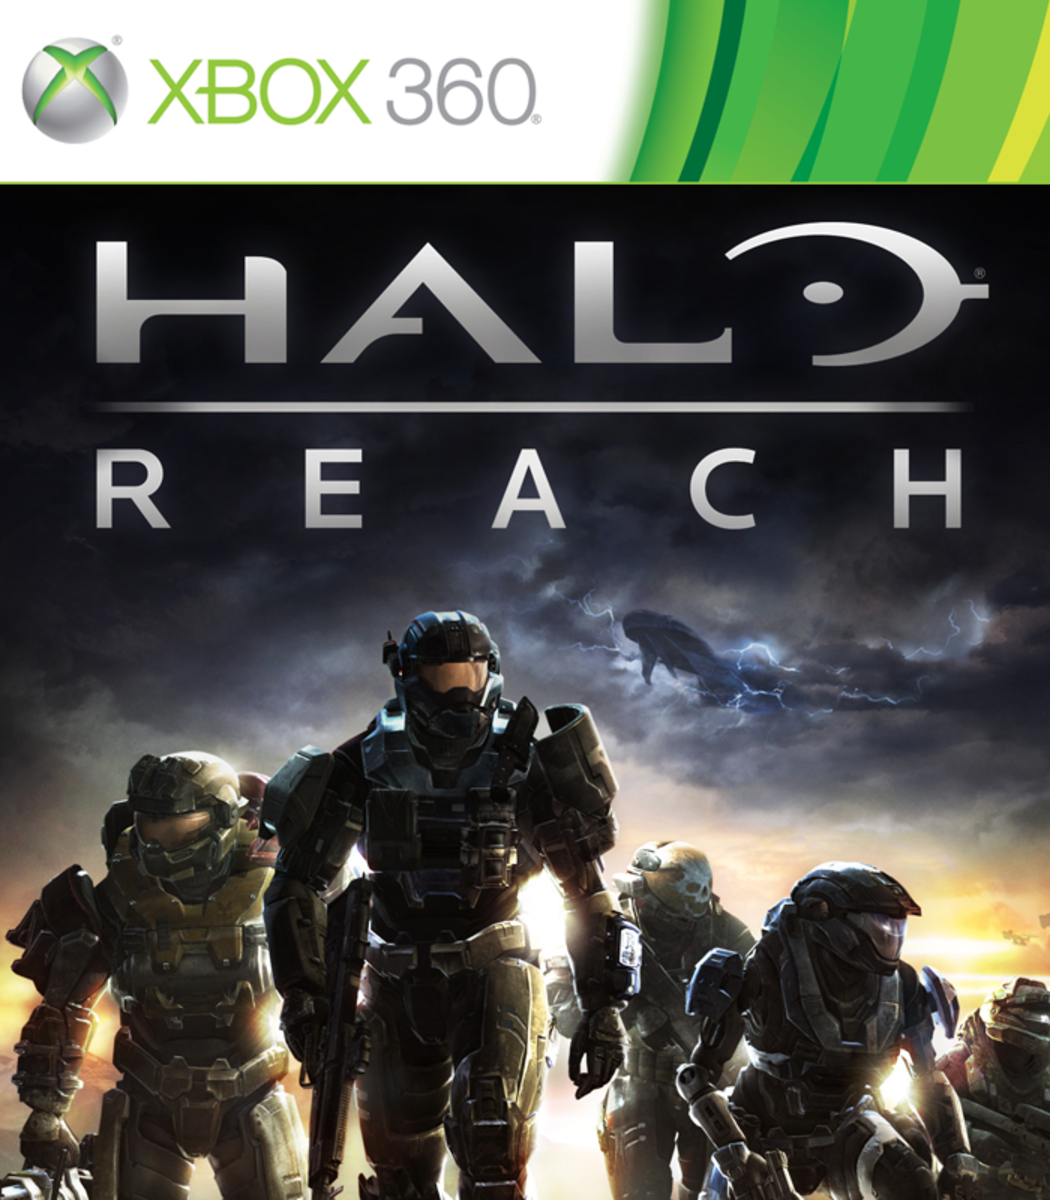 Halo: Reach XBOX 360 game cover